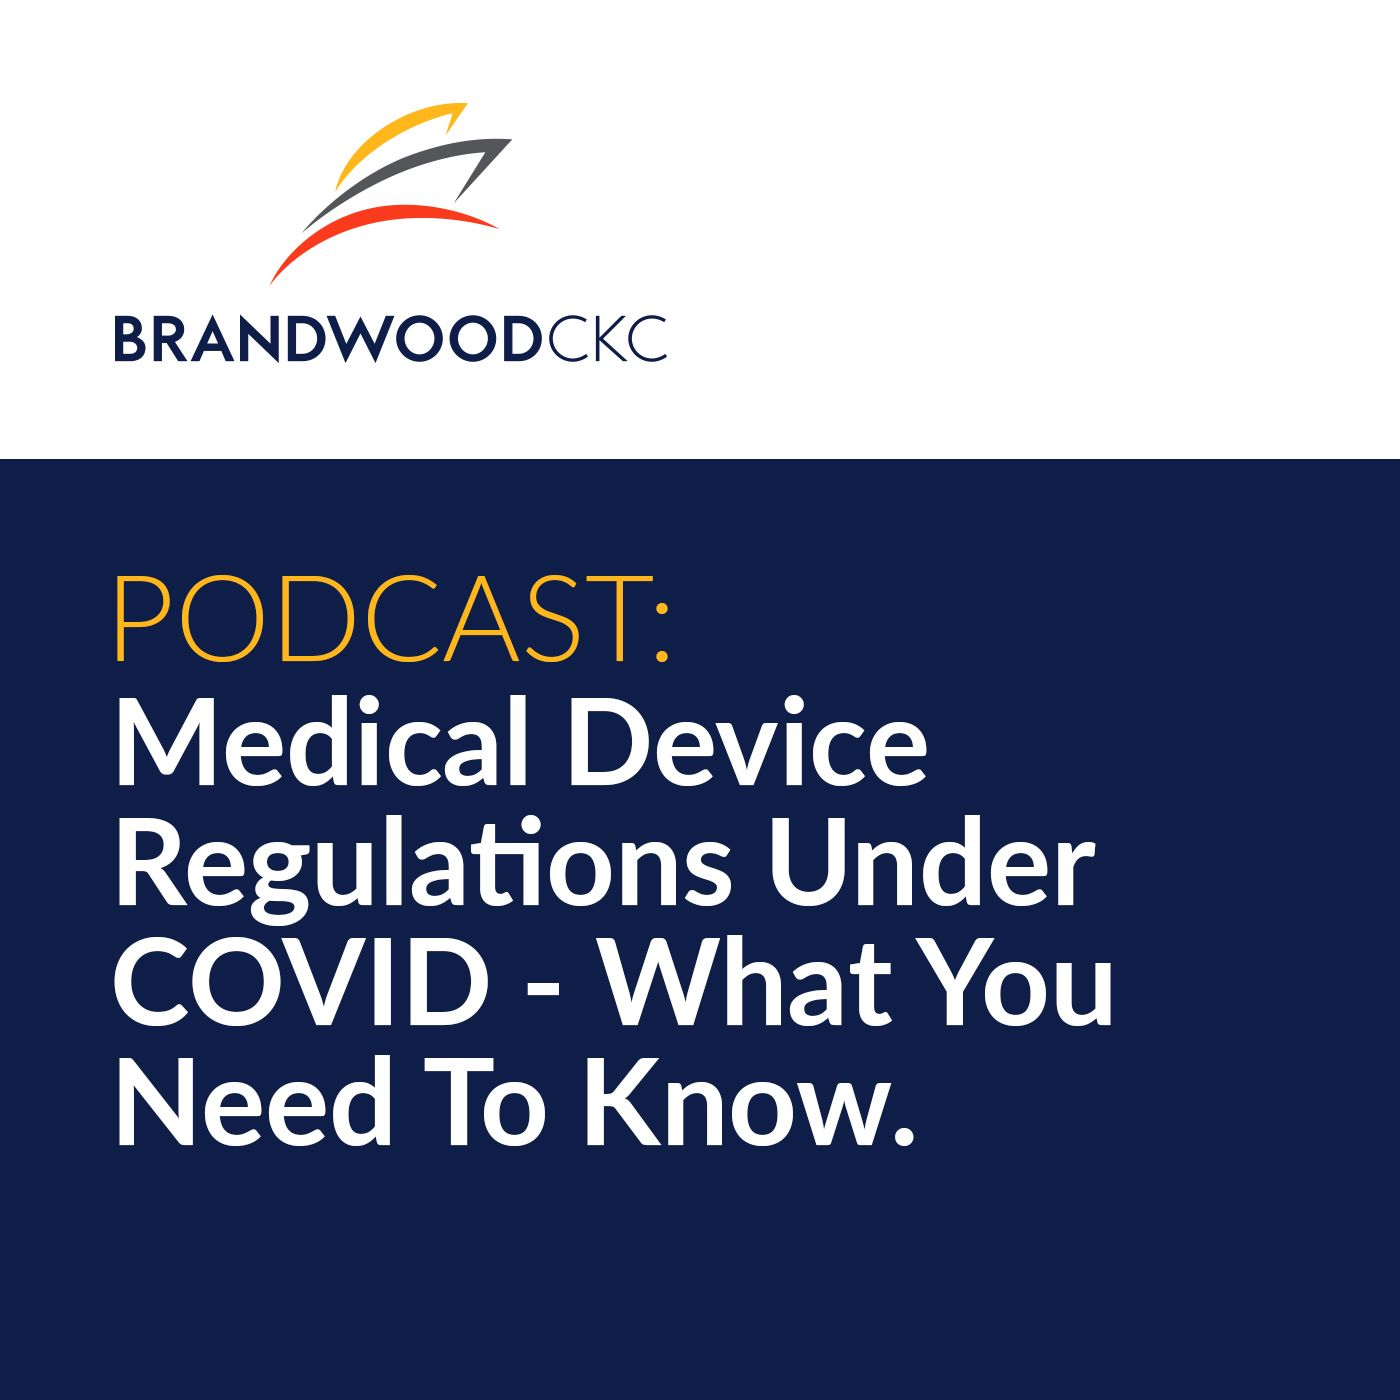 Medical Device Regulations Under COVID - What You Need To Know